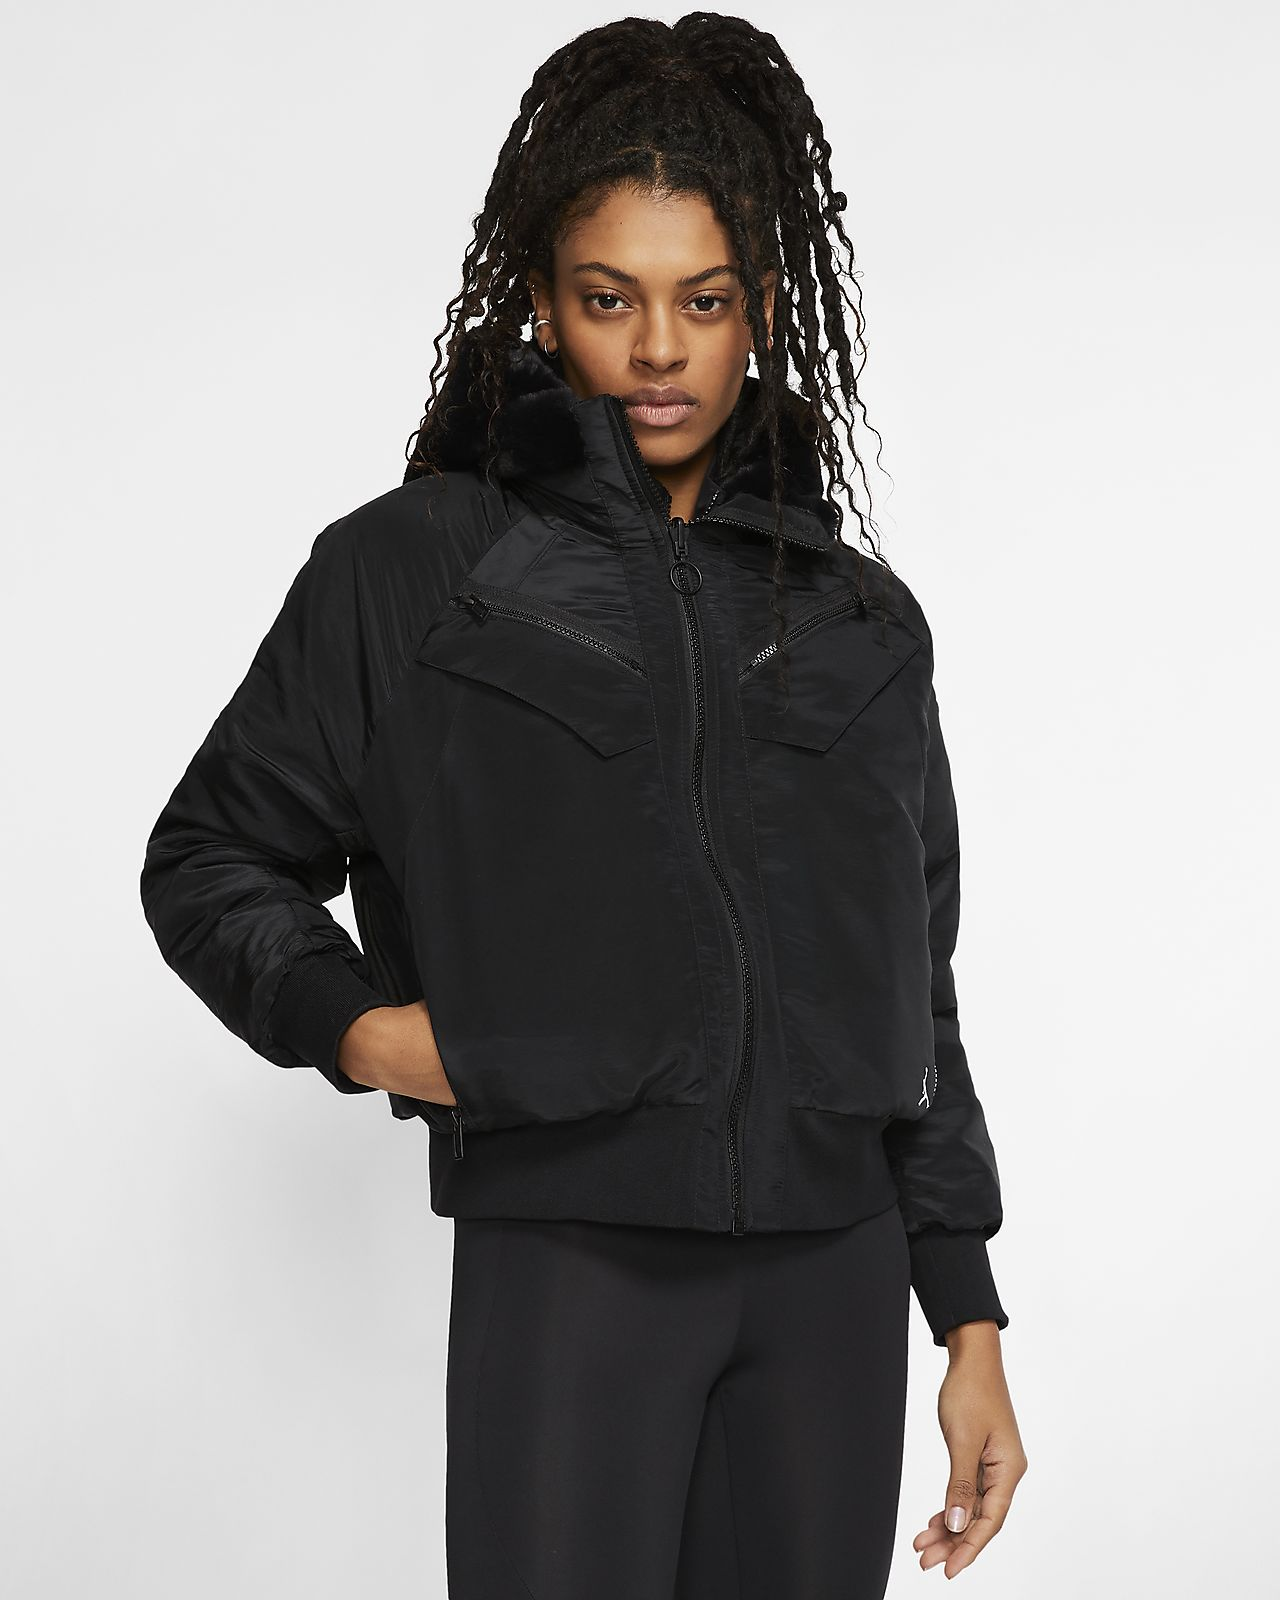 Jordan Women's Reversible Bomber Jacket